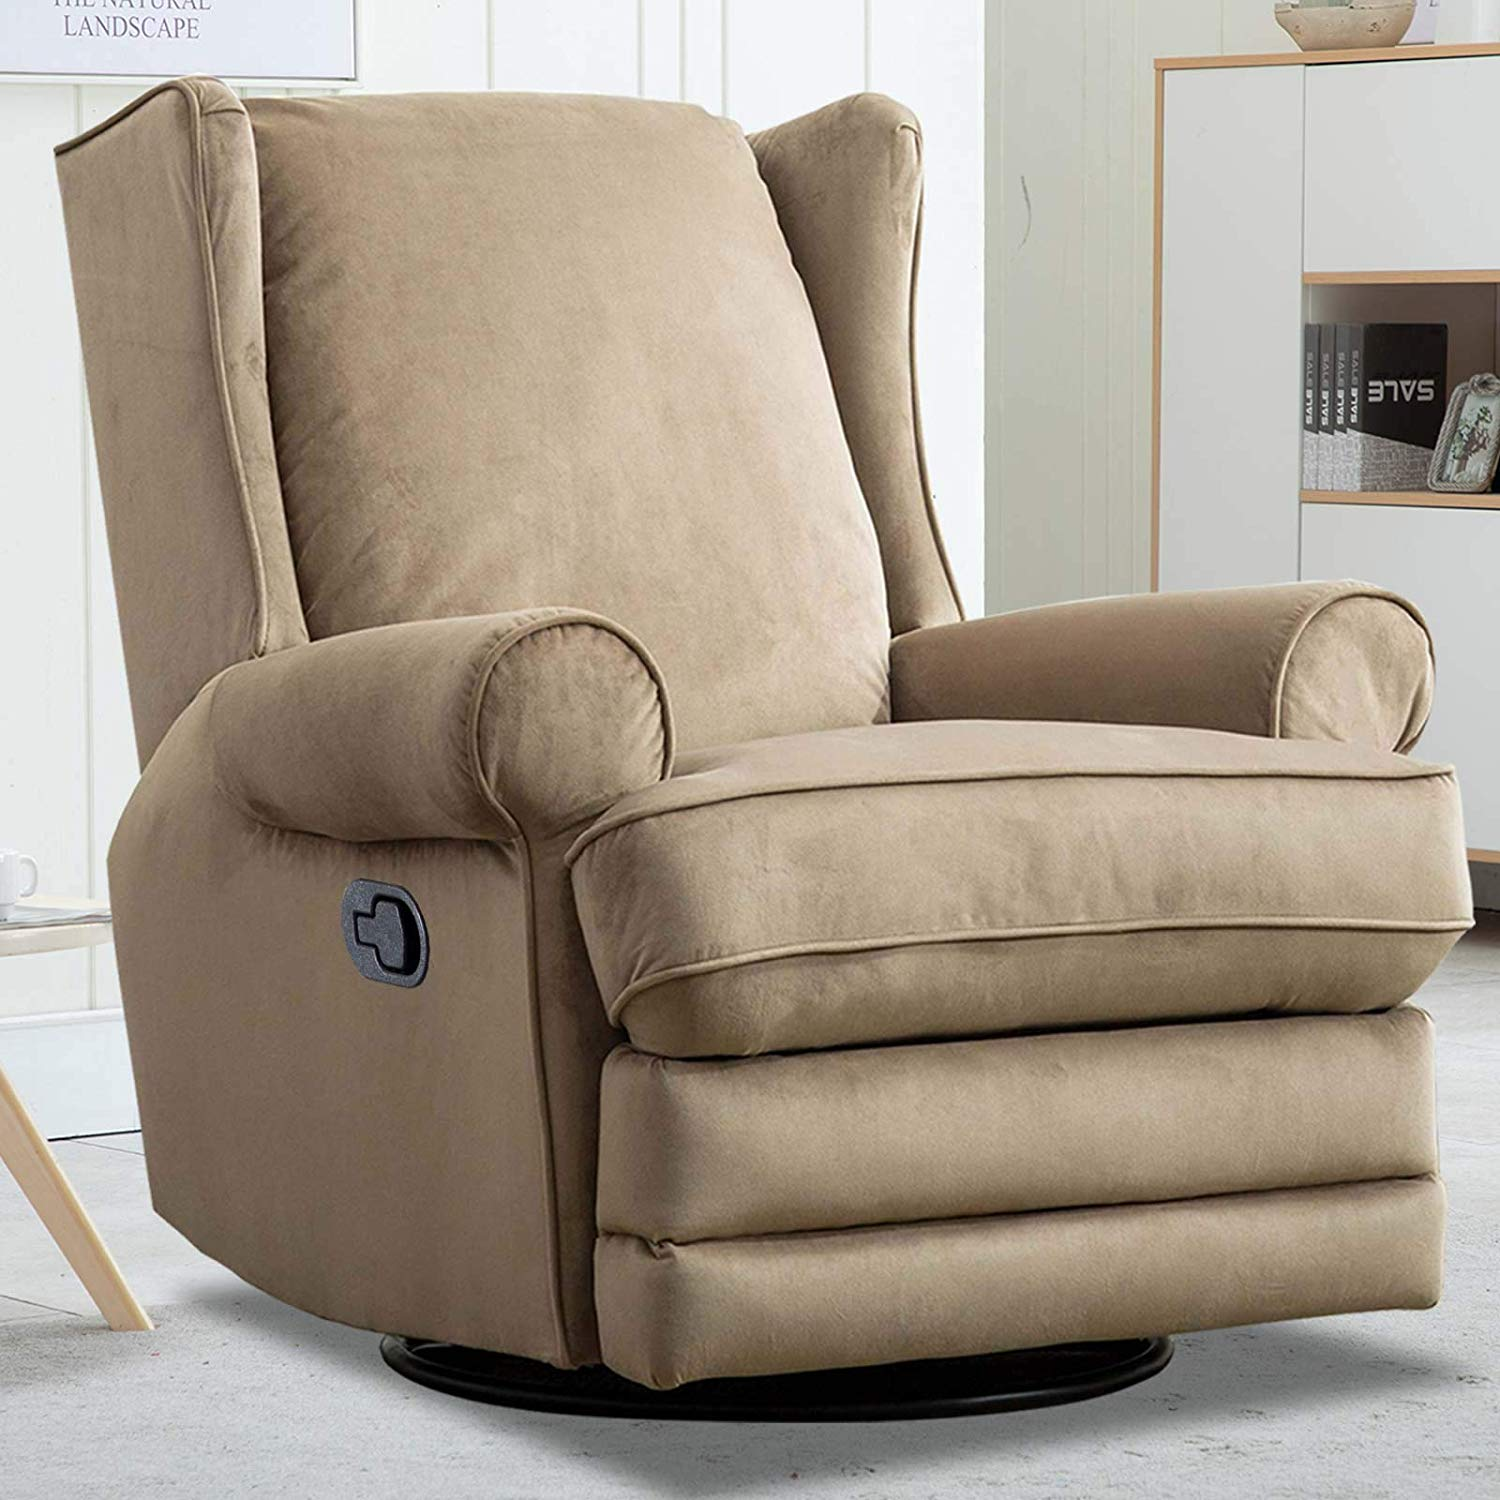 CANMOV Fabric Swivel Rocker Recliner Chair with Roll Arm and Overstuffed Back, Beige